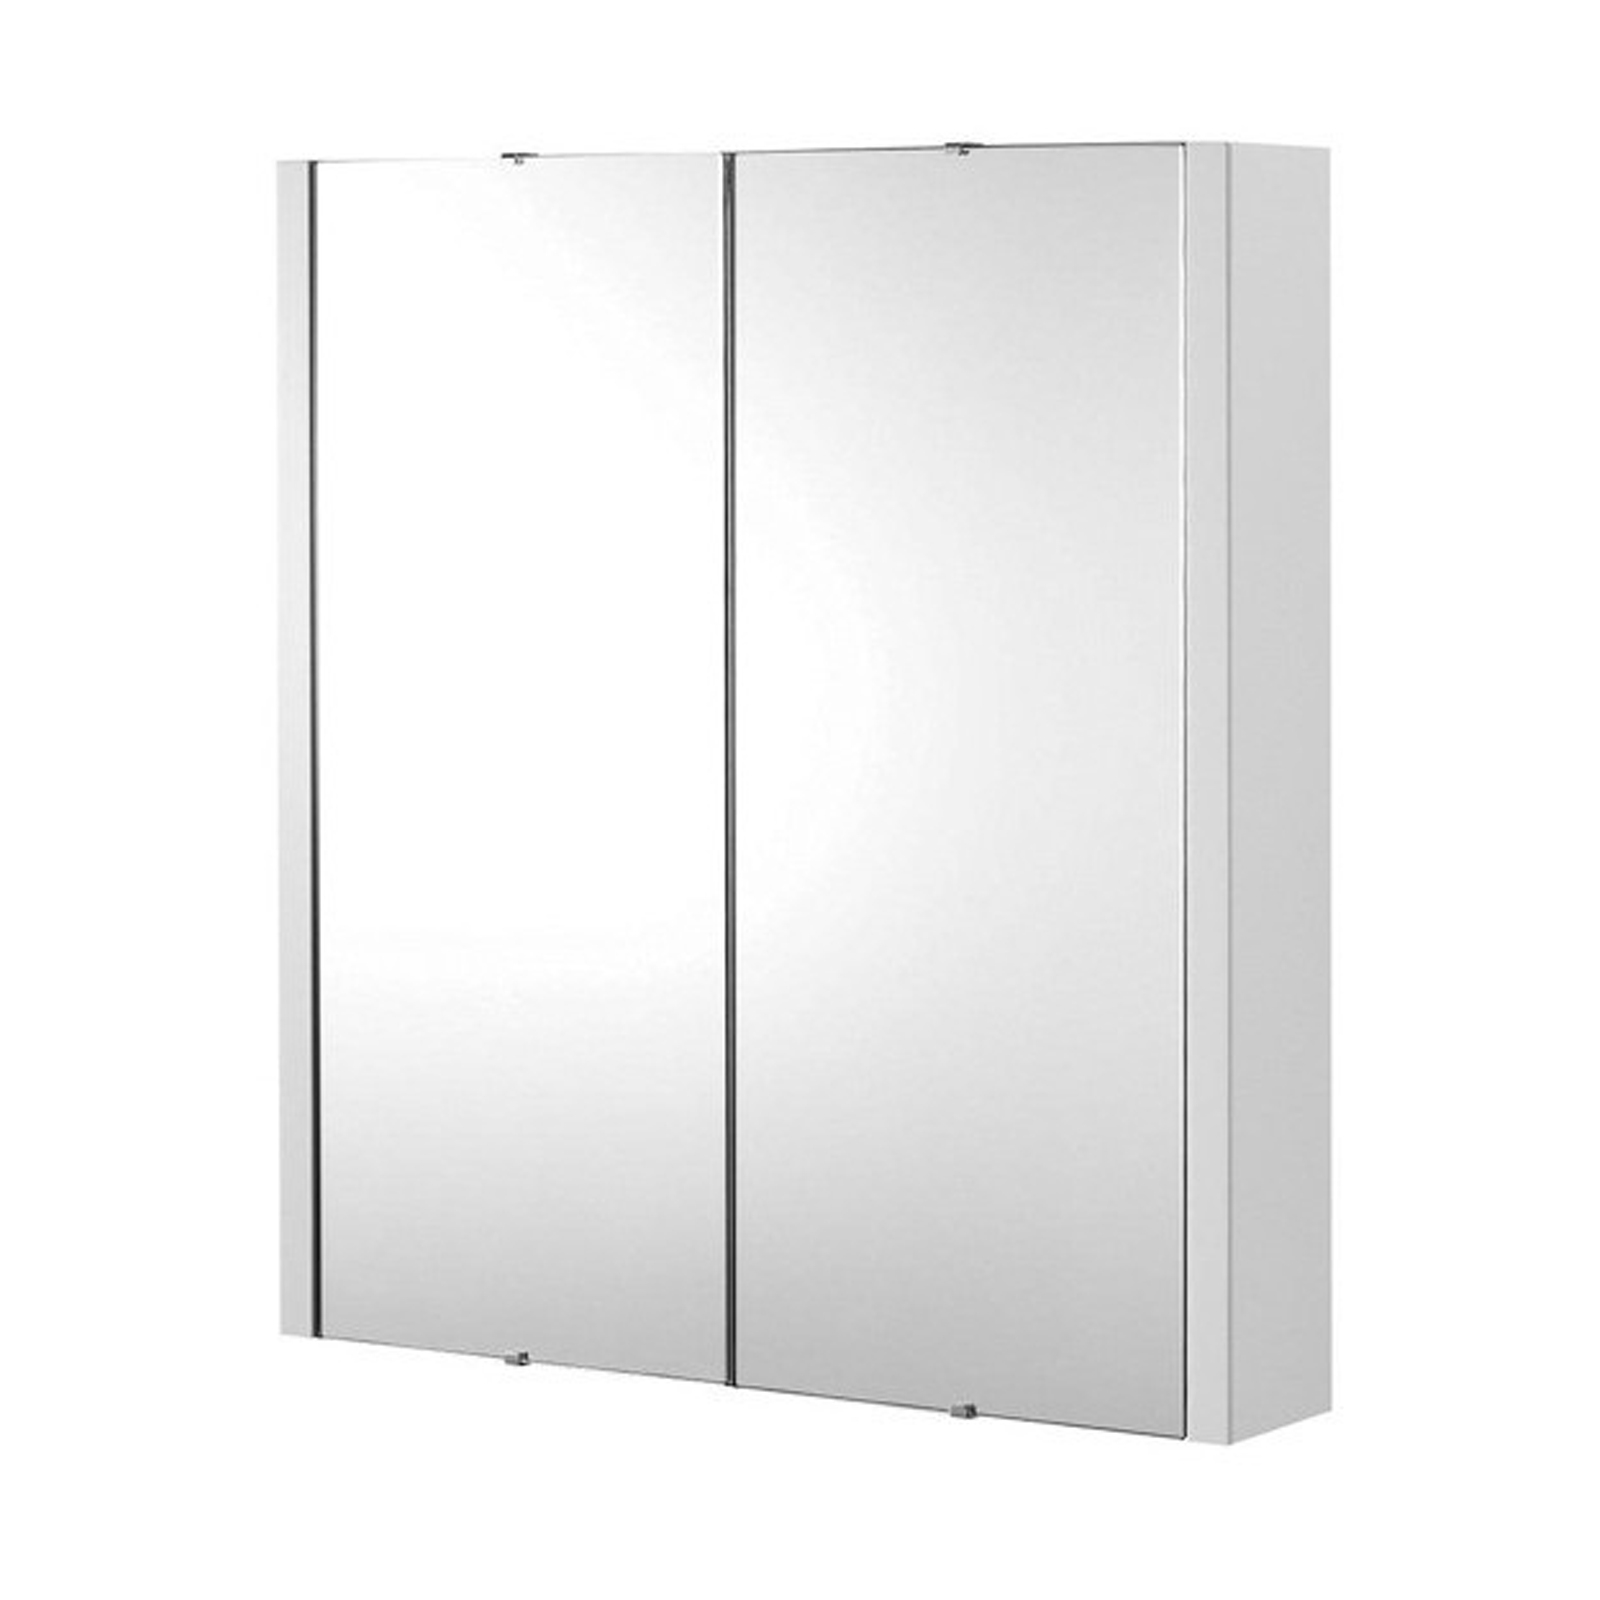 Argos 3 Door Mirrored Bathroom Cabinet1600 X 1600